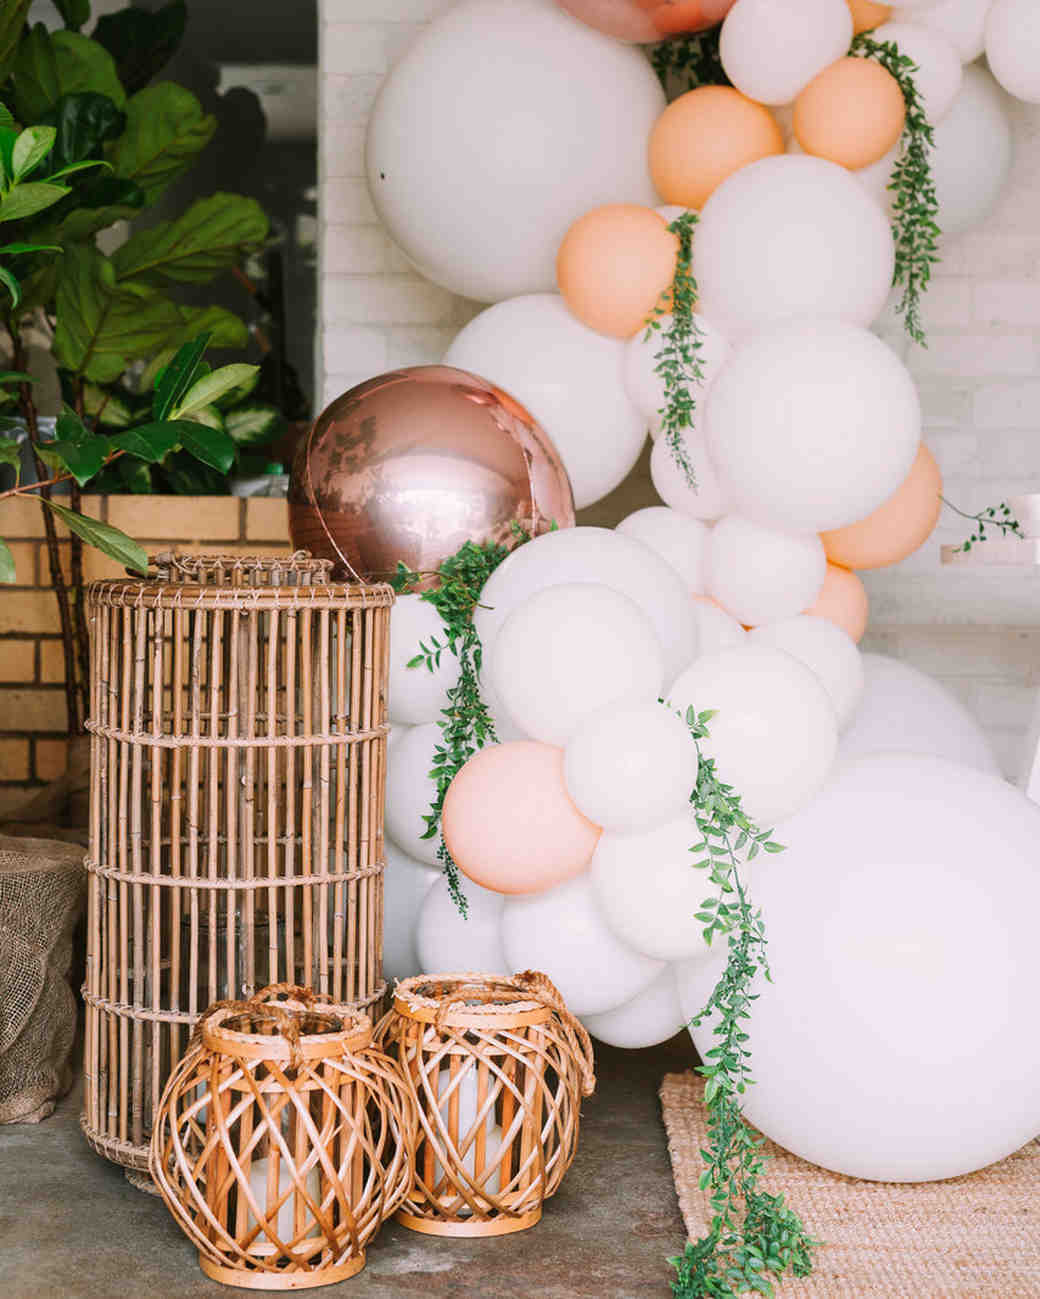 Rose Wedding Ideas: Rose Gold Wedding Ideas That Make A Statement